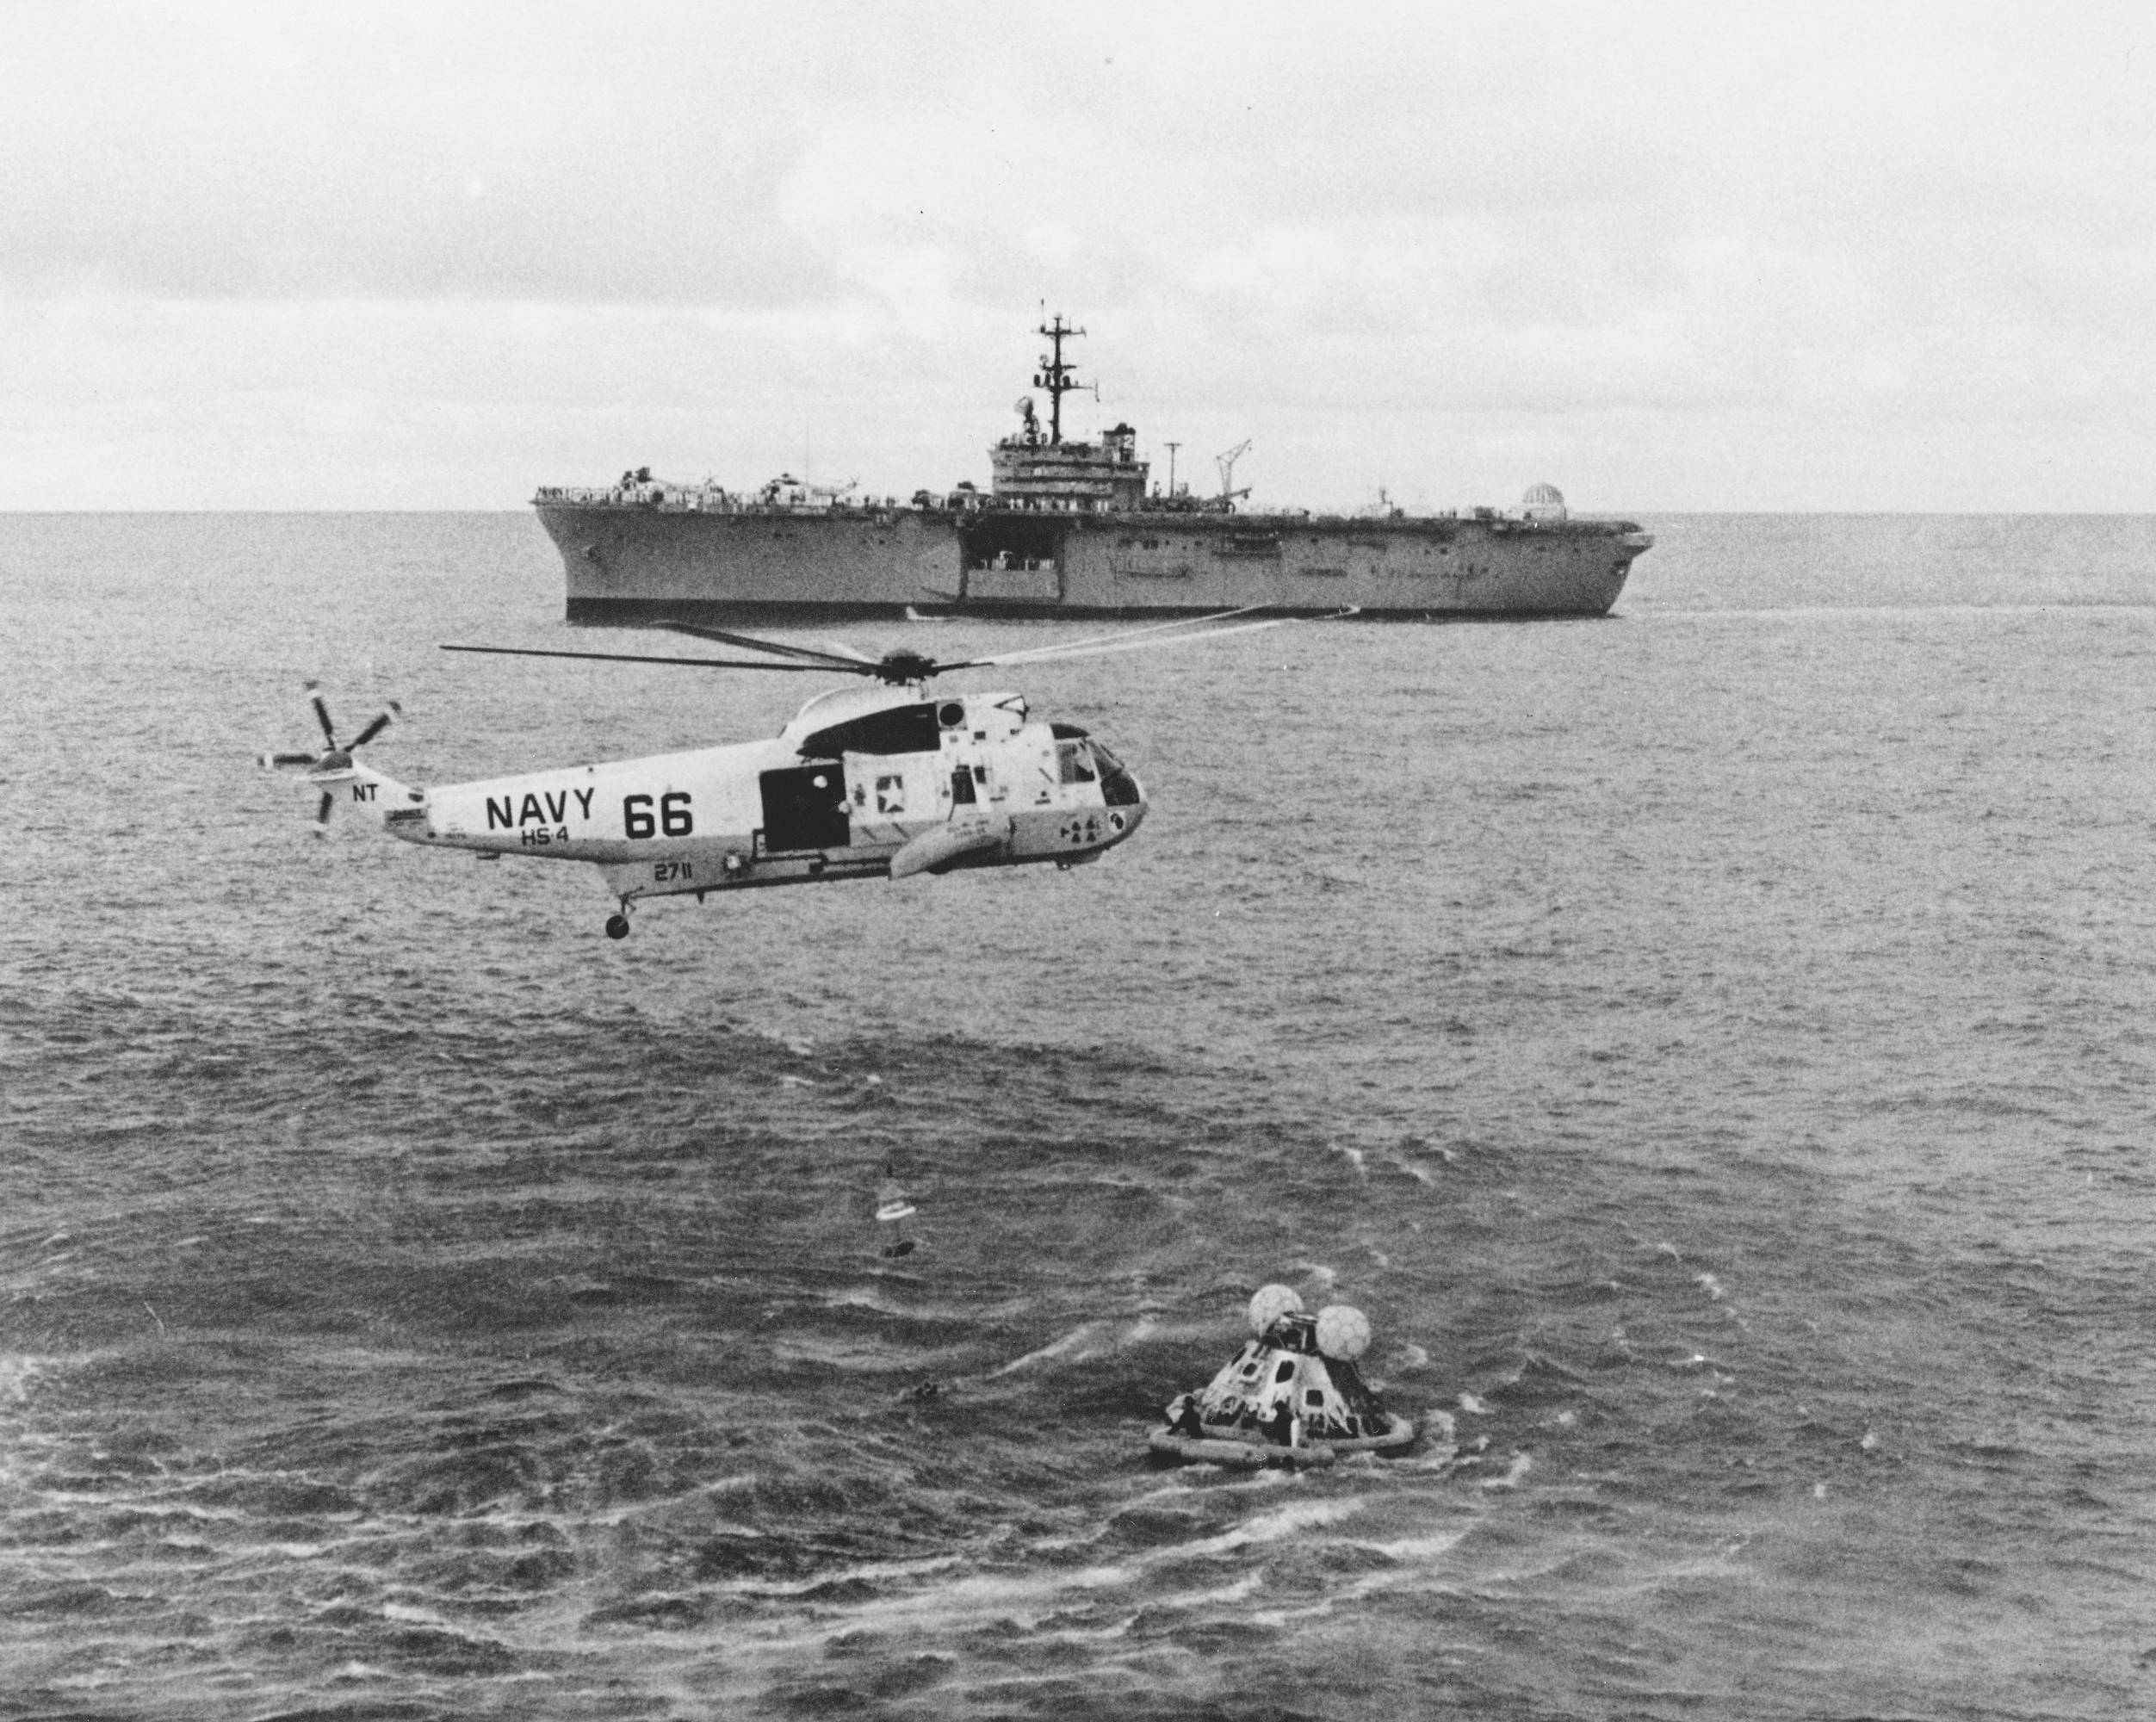 Apollo 13 crew recovery after splashdown